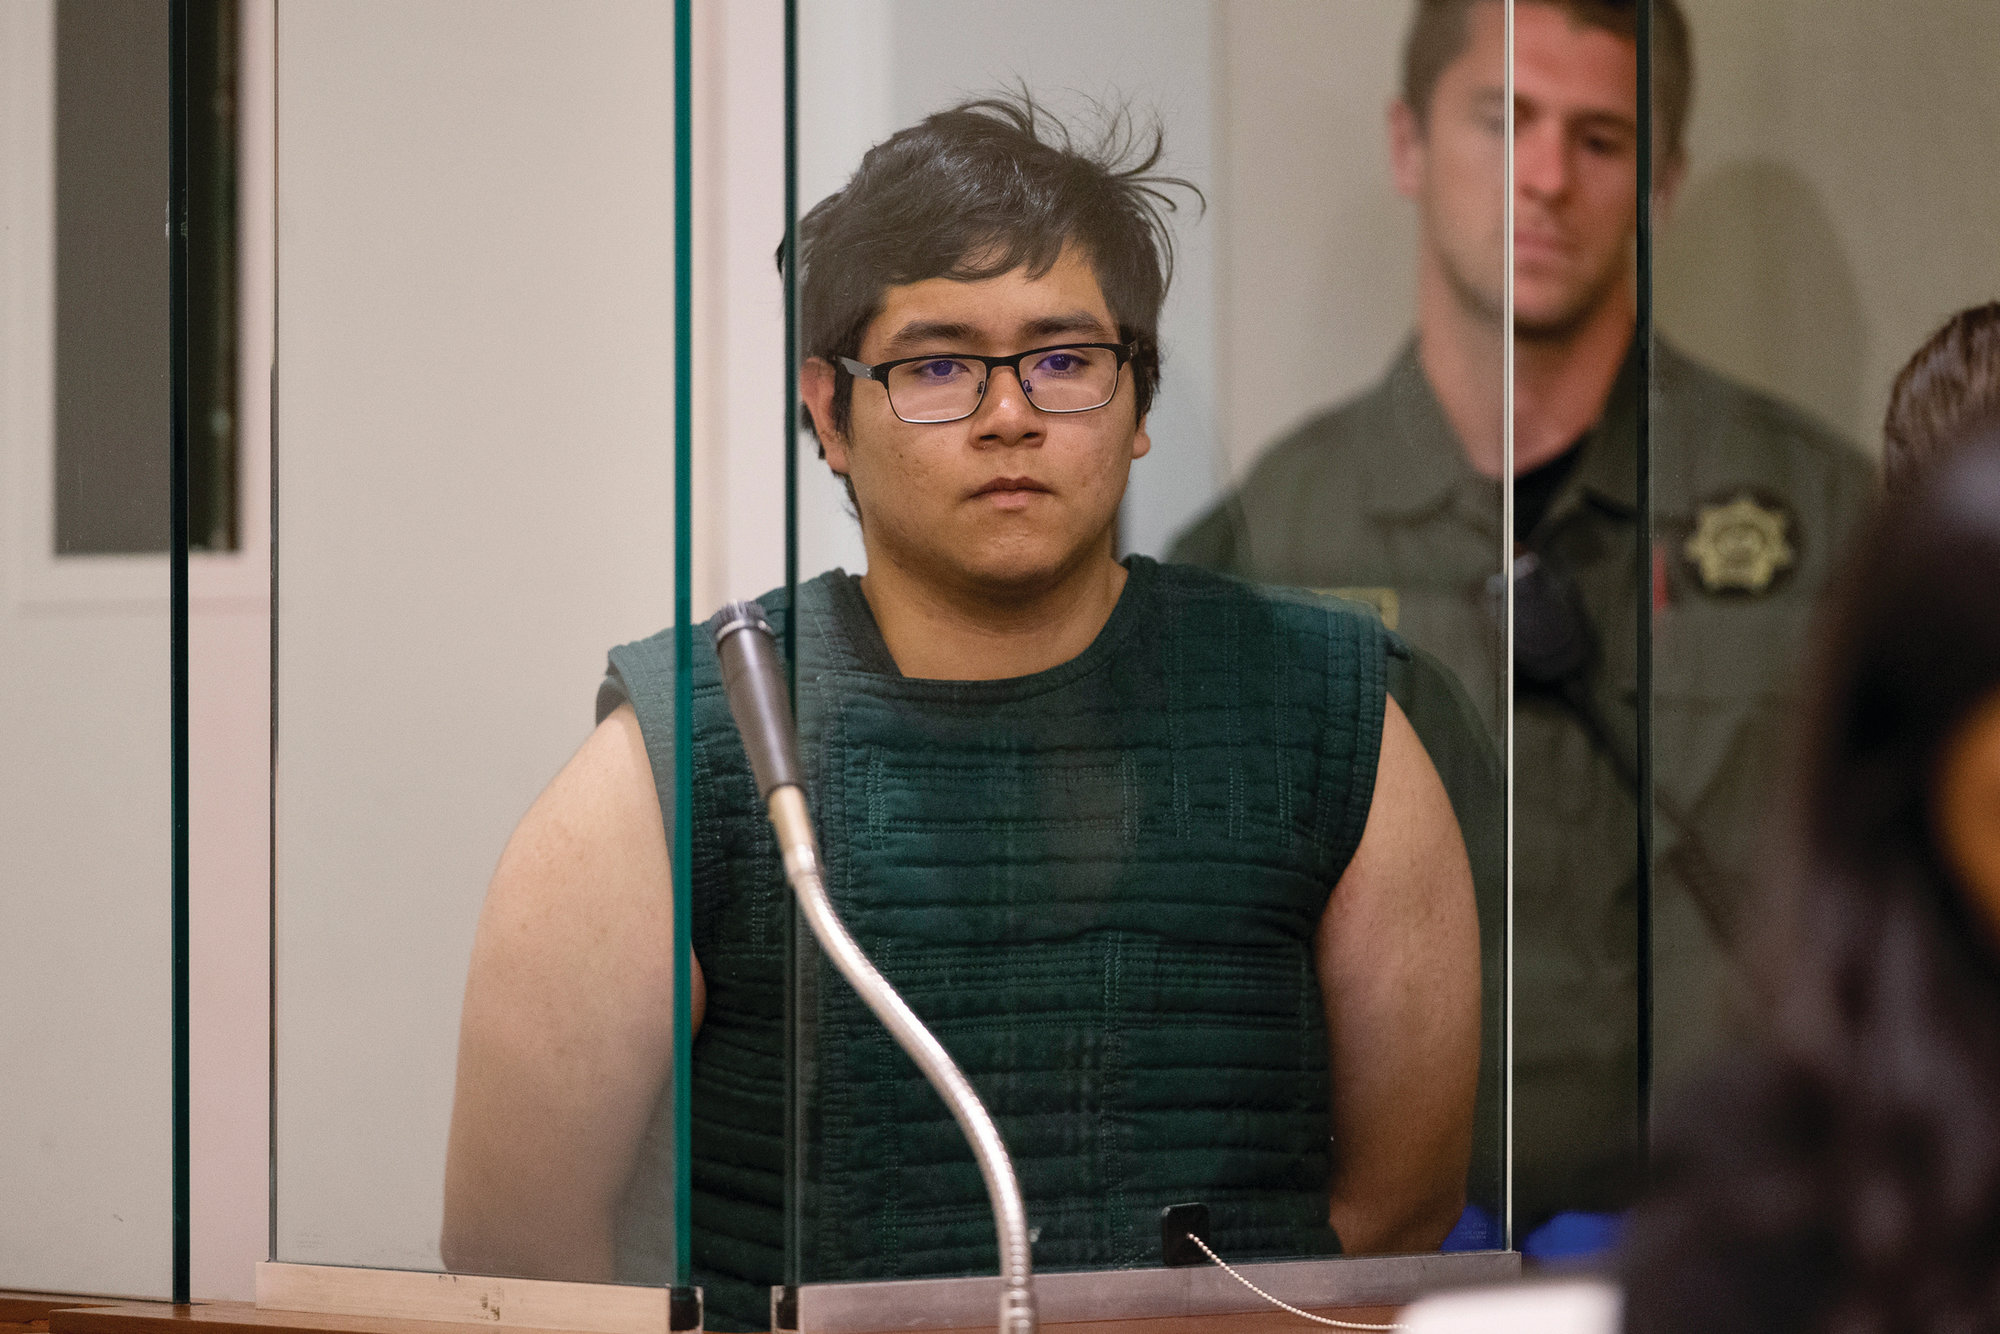 Angel Granados-Diaz, 19, a Parkrose High School student accused of bringing a shotgun to class on Friday, appears in a brief court hearing in Portland, Oregon, on Monday. Granados-Diaz pleaded not guilty during the brief court hearing to a felony count of possessing a weapon in a public building and three misdemeanors.